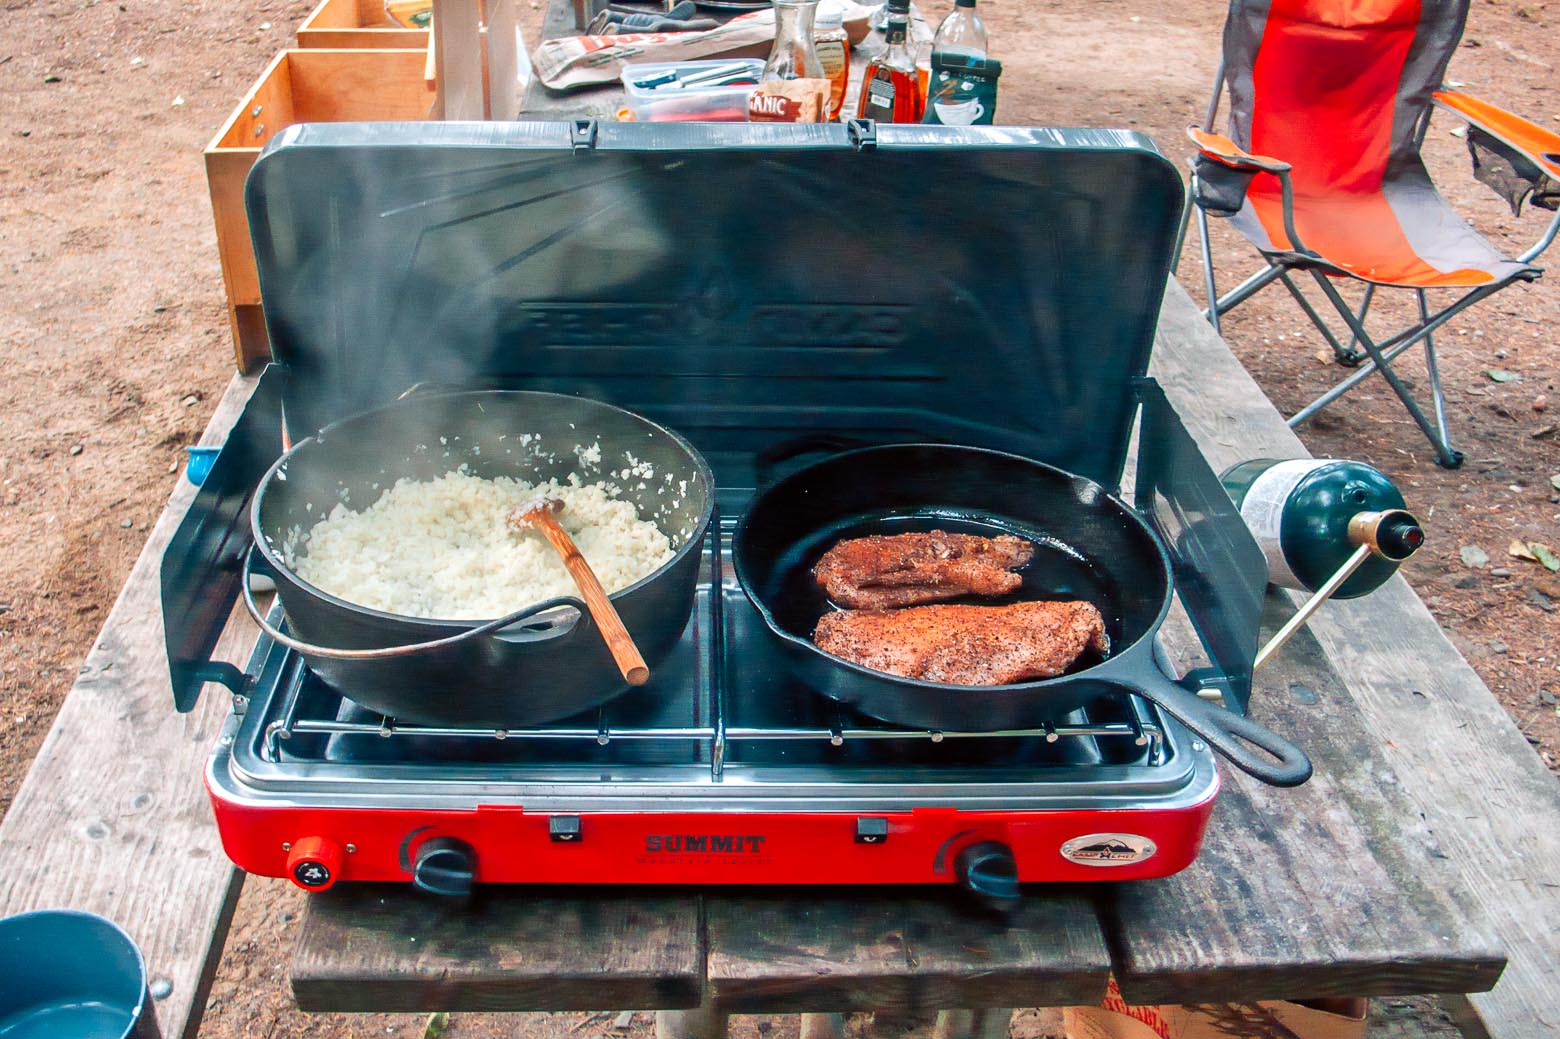 How do you choose the best car camping stove? In this guide we cover everything you need to choose the best stove for car camping - from BTUs to burners to fuel types, we explain it all!